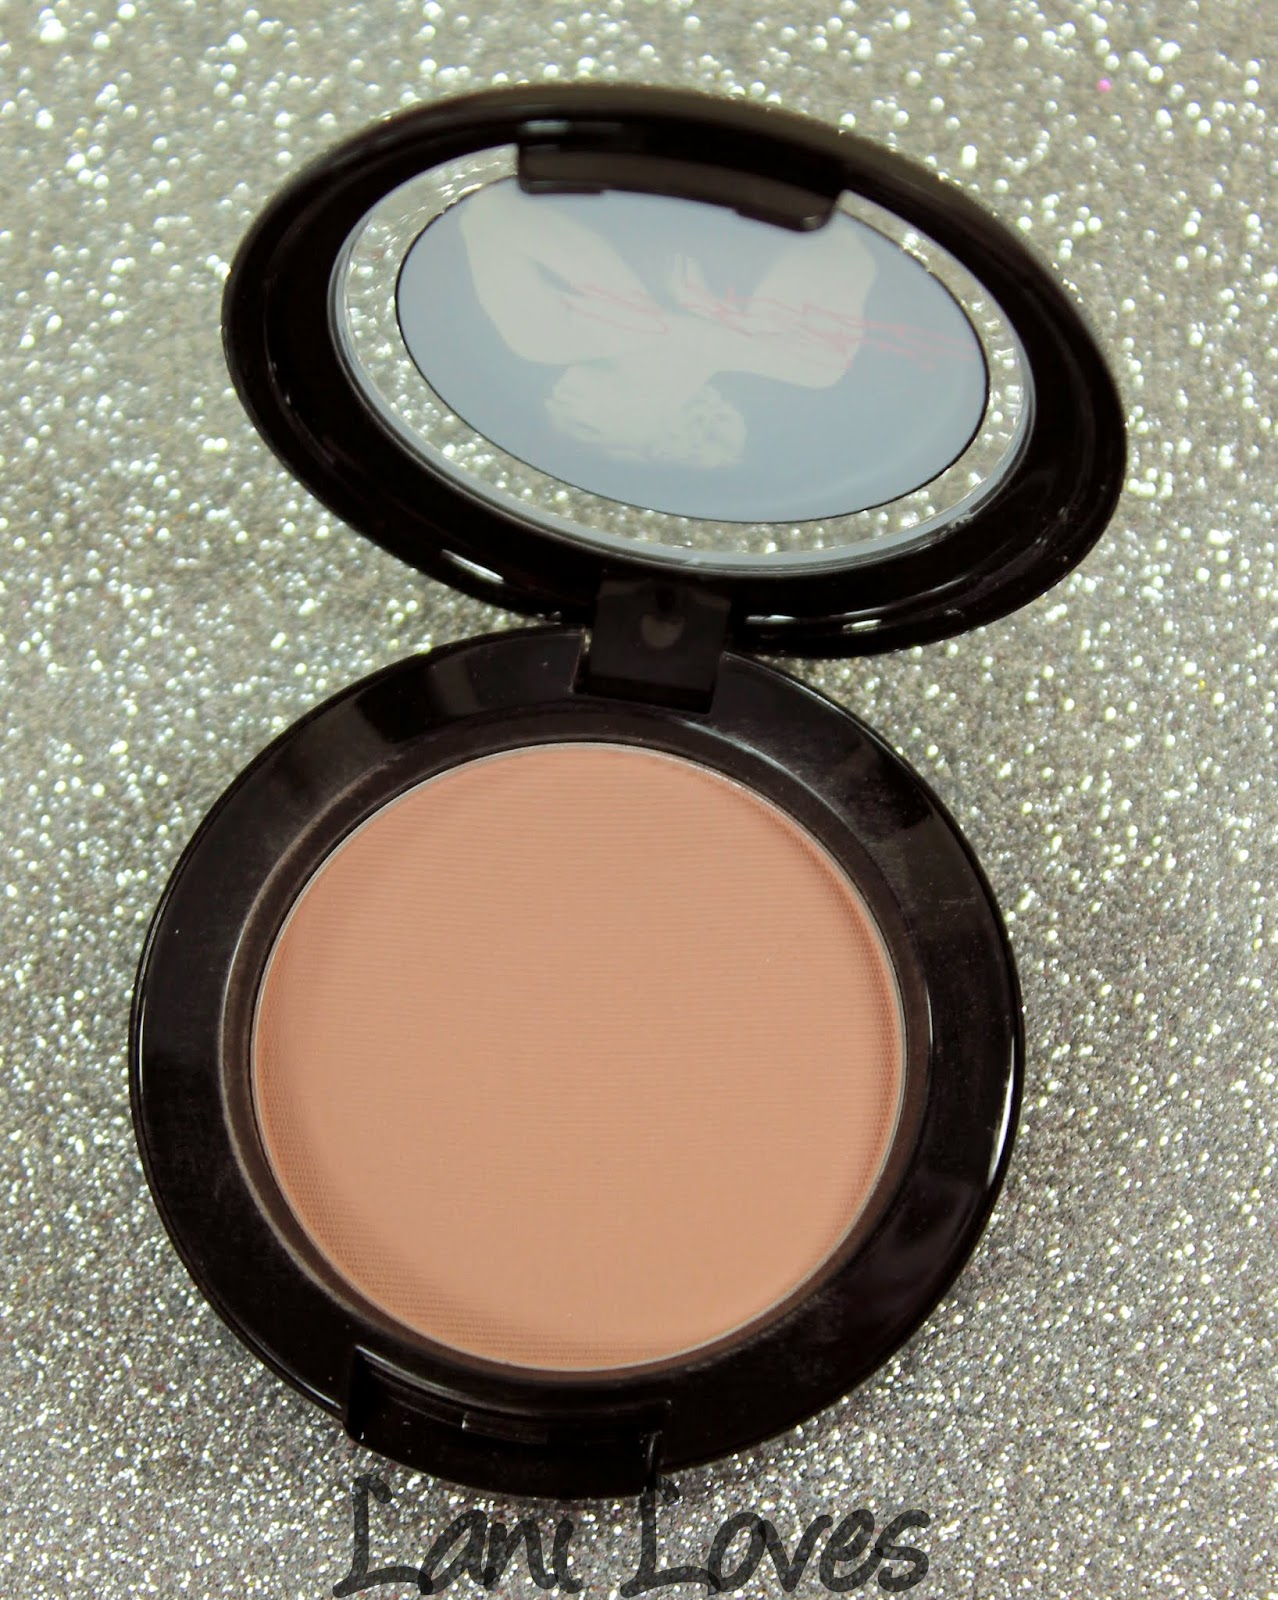 MAC Monday: MAC X Marilyn Monroe - The Perfect Cheek Blush Swatches & Review